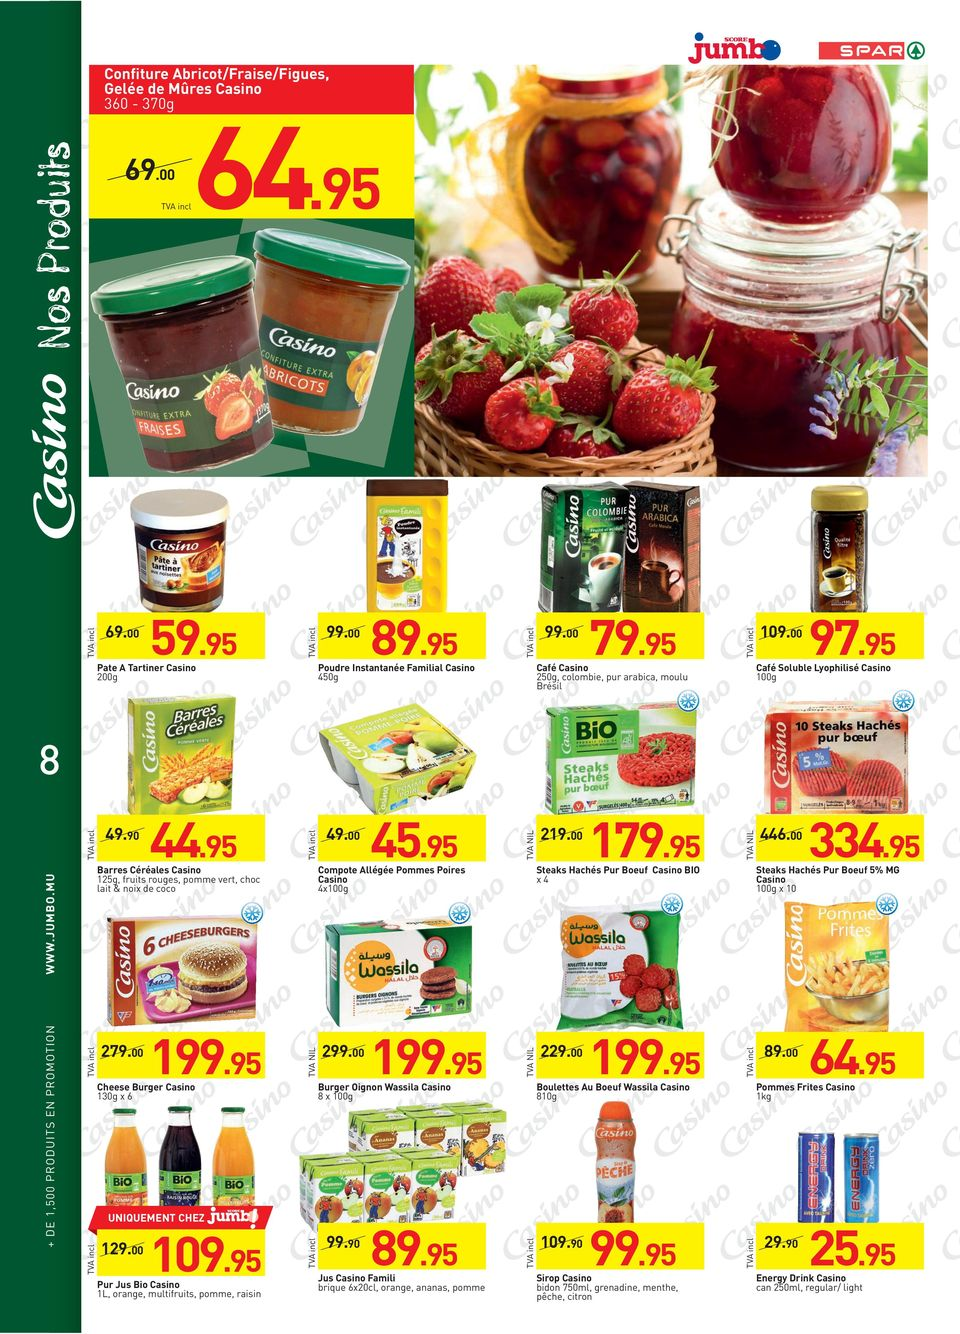 95 Café Soluble Lyophilisé 100g Pur Jus Bio 1L, orange, multifruits, pomme, raisin 109.95 99.90 89.95 Jus Famili brique 6x20cl, orange, ananas, pomme Burger Oignon Wassila 8 x 100g 129.00 229.00 199.